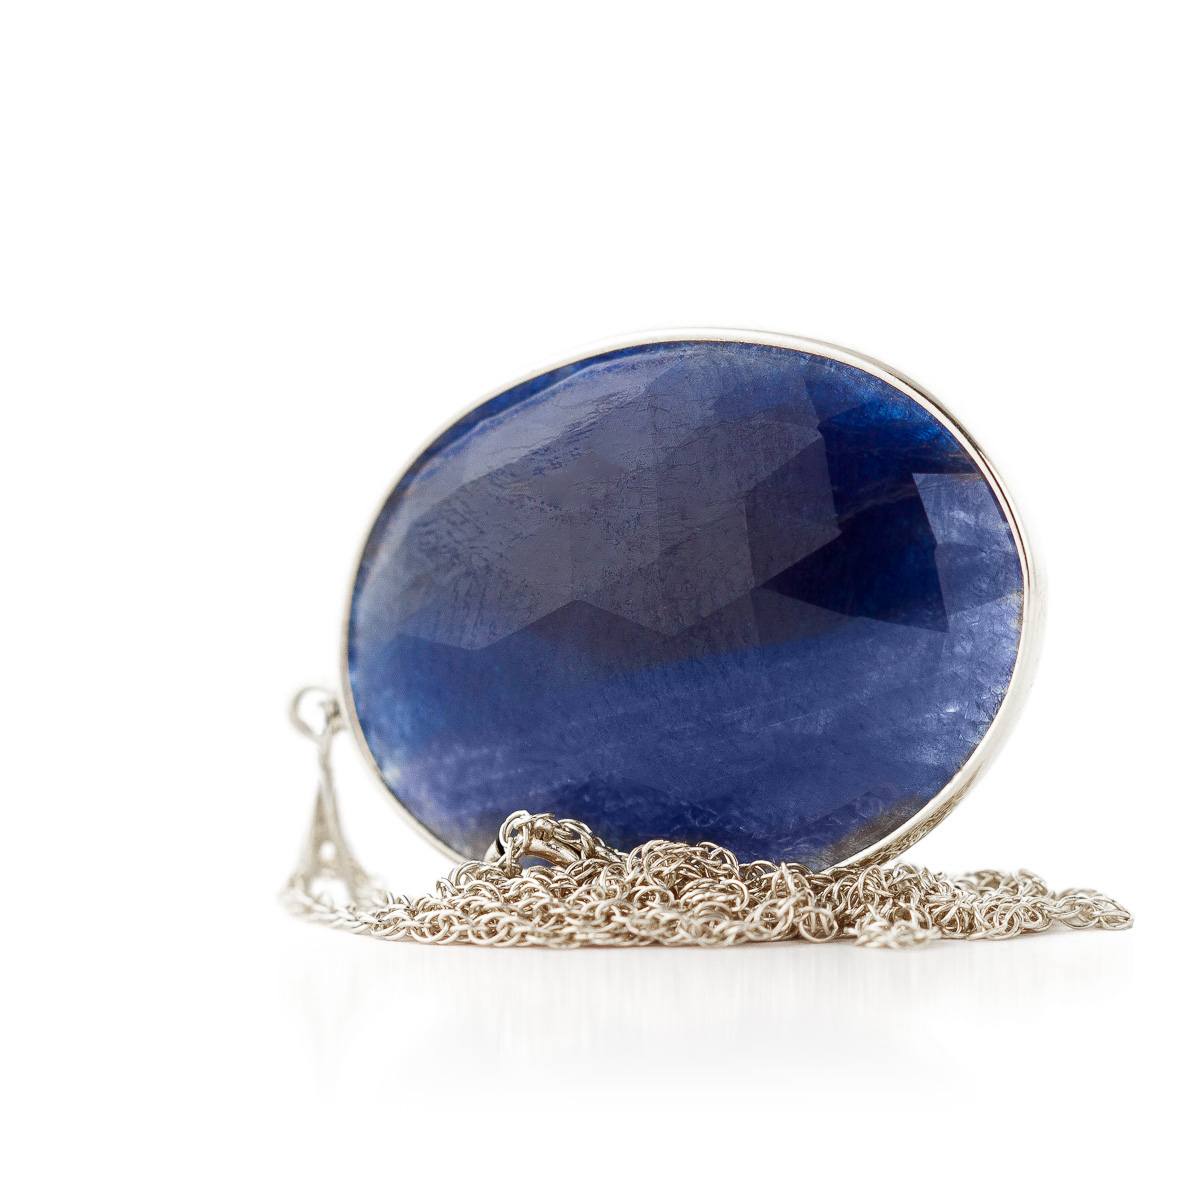 Oval Cut Sapphire Pendant Necklace 20.0ctw in 9ct White Gold